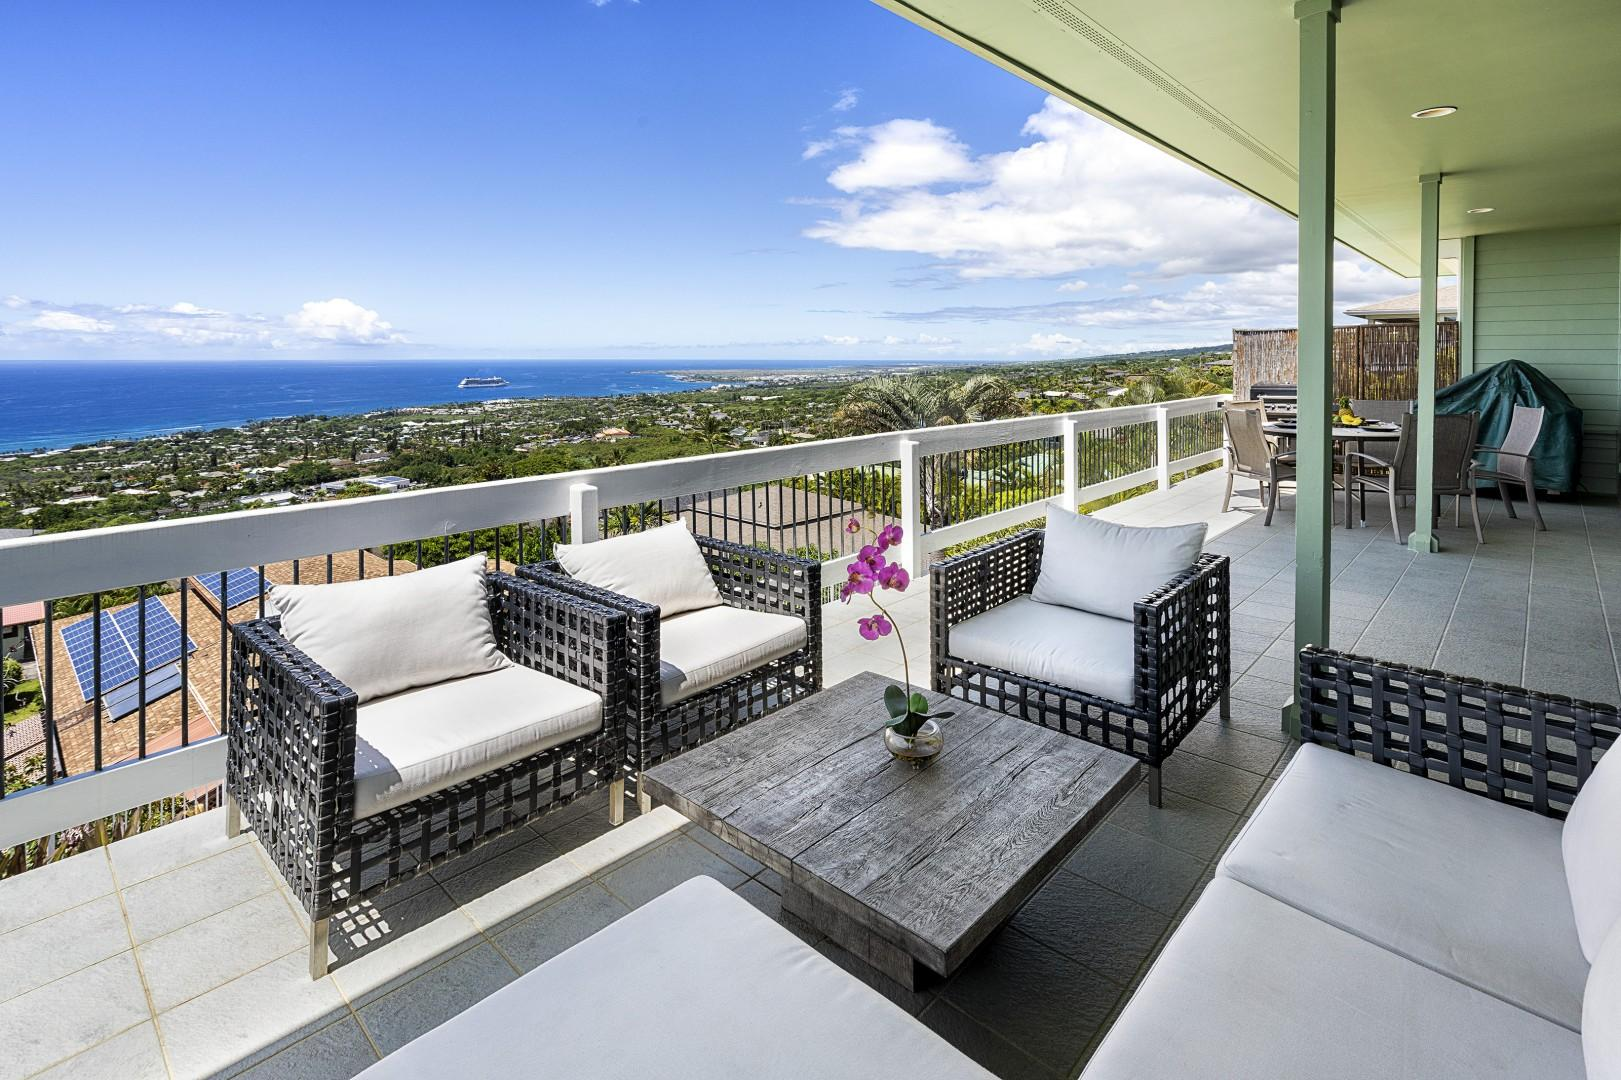 Enjoy time with your group on this private Lanai!